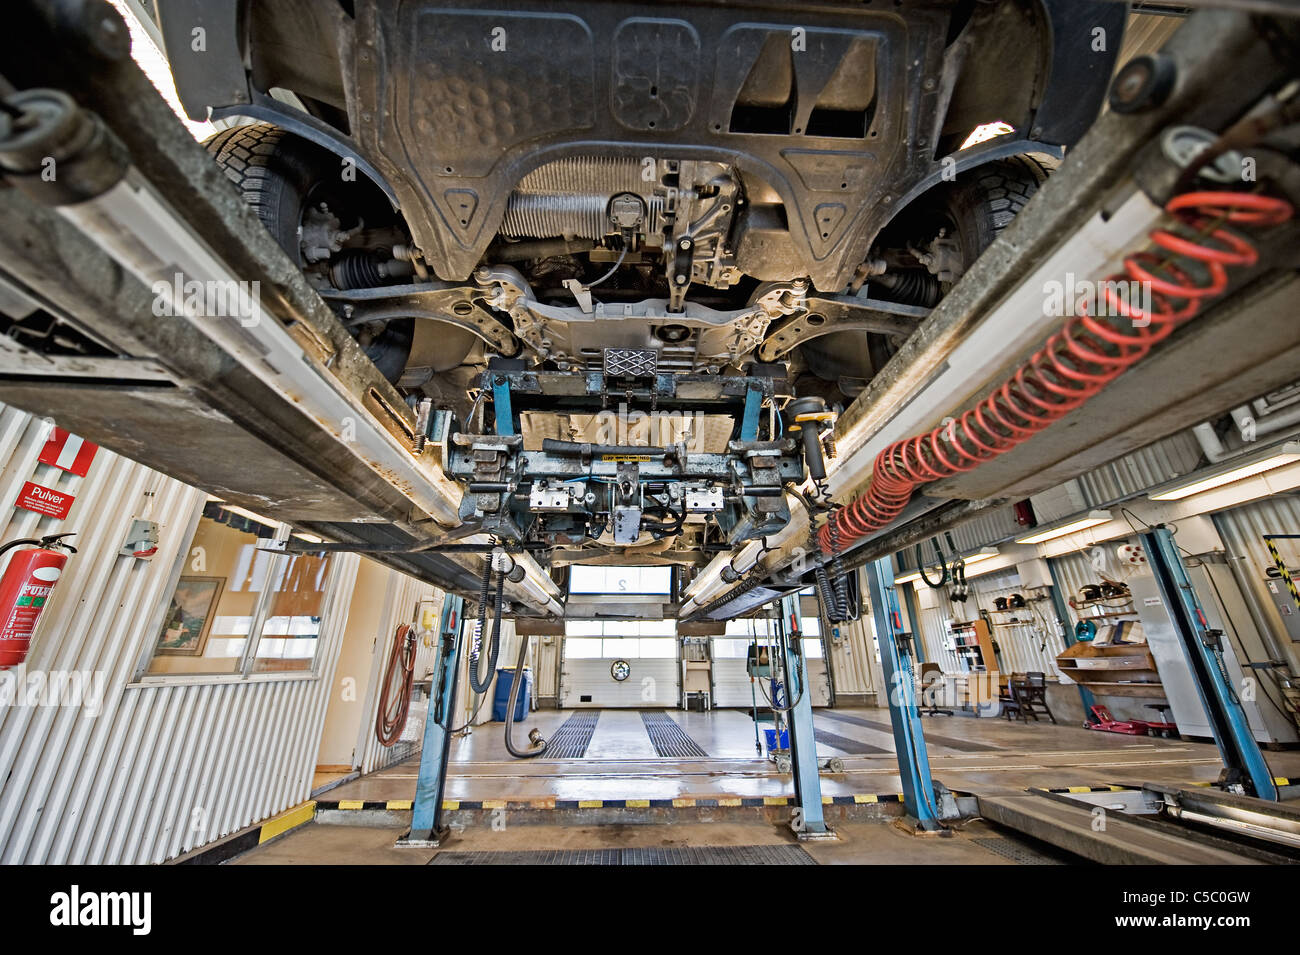 View from below of a vehicle during inspection - Stock Image